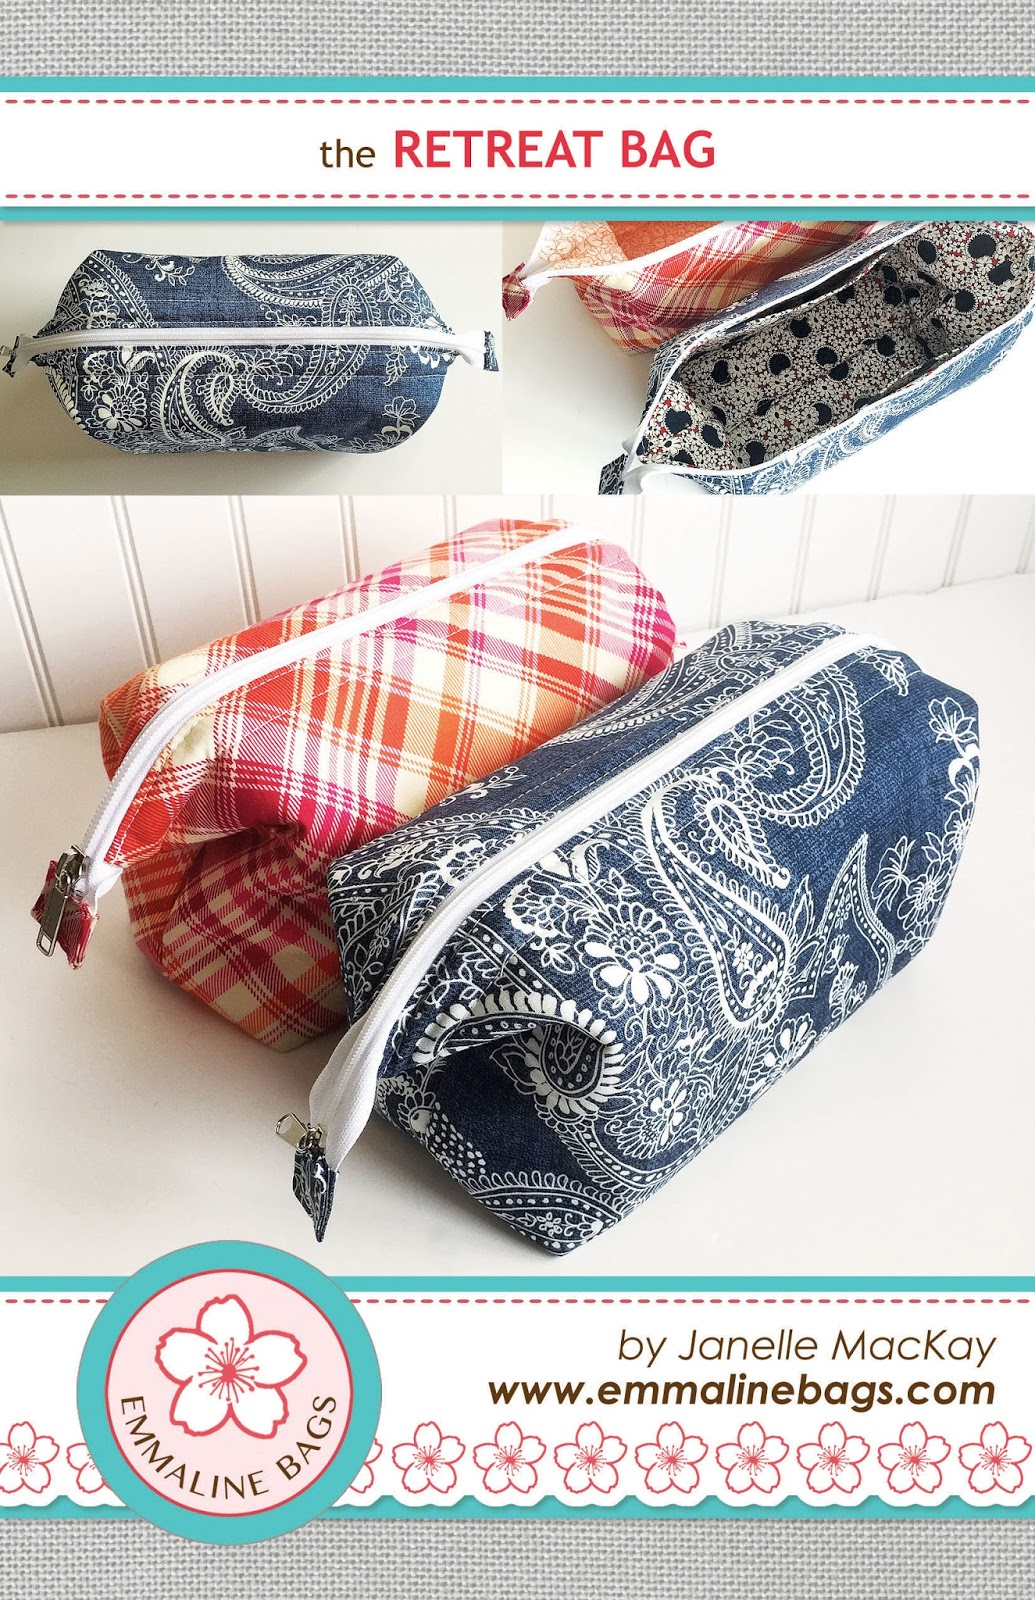 Emmaline bags sewing patterns and purse supplies the retreat bag the retreat bag a free sewing tutorial jeuxipadfo Image collections